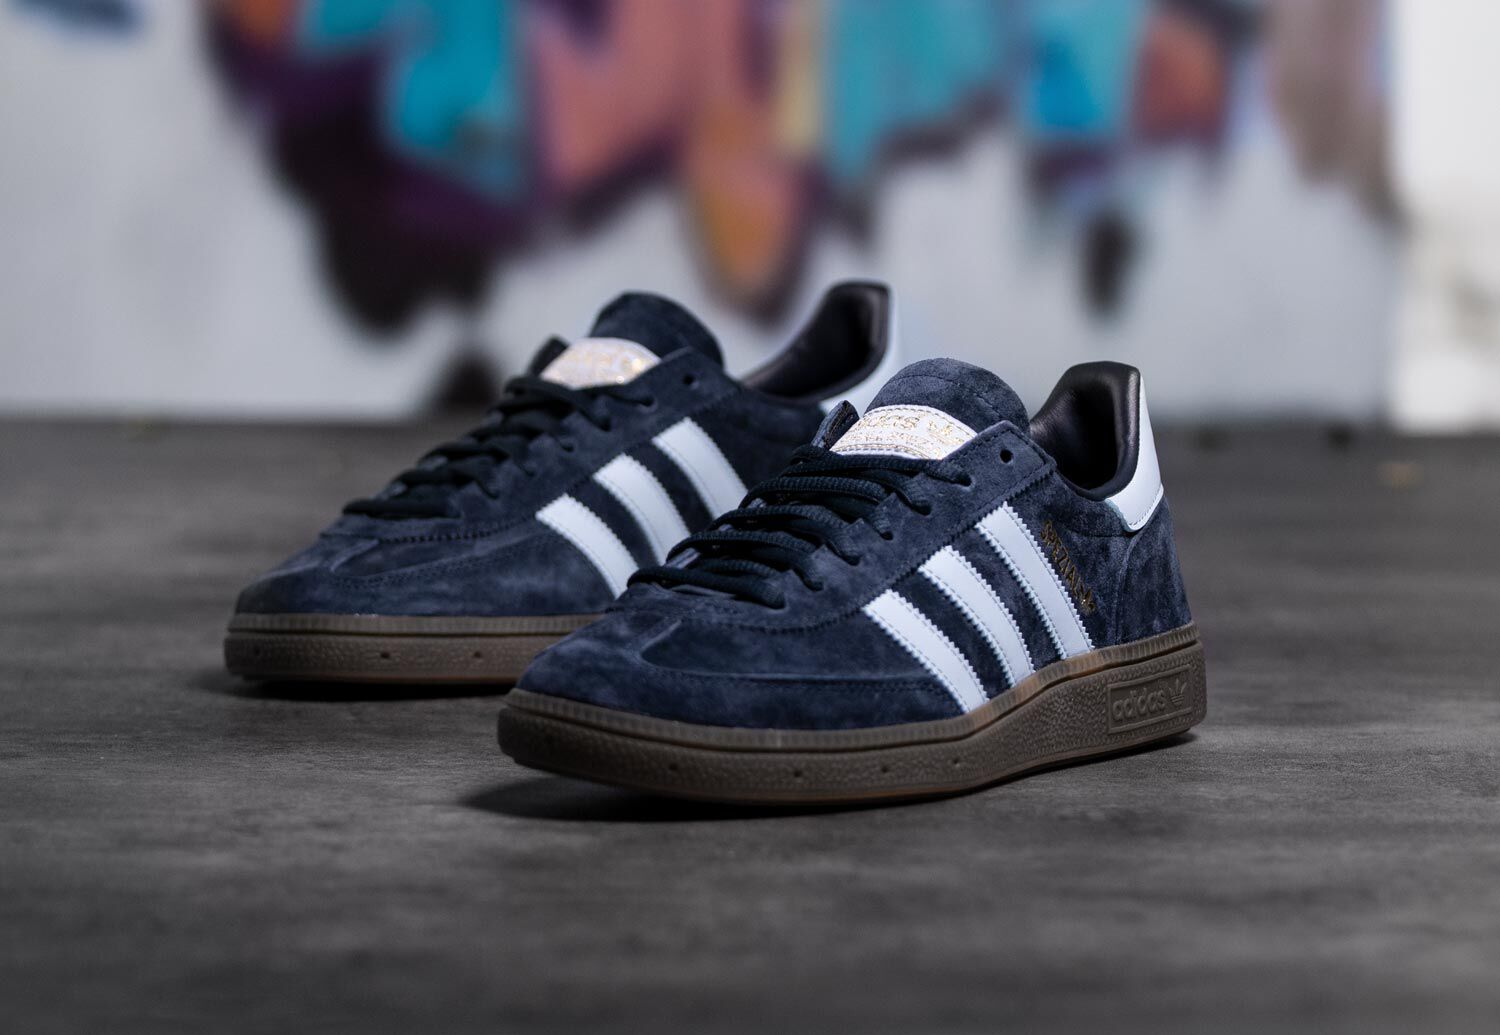 adidas Handball Spezial - Sneakers Low at Stylefile